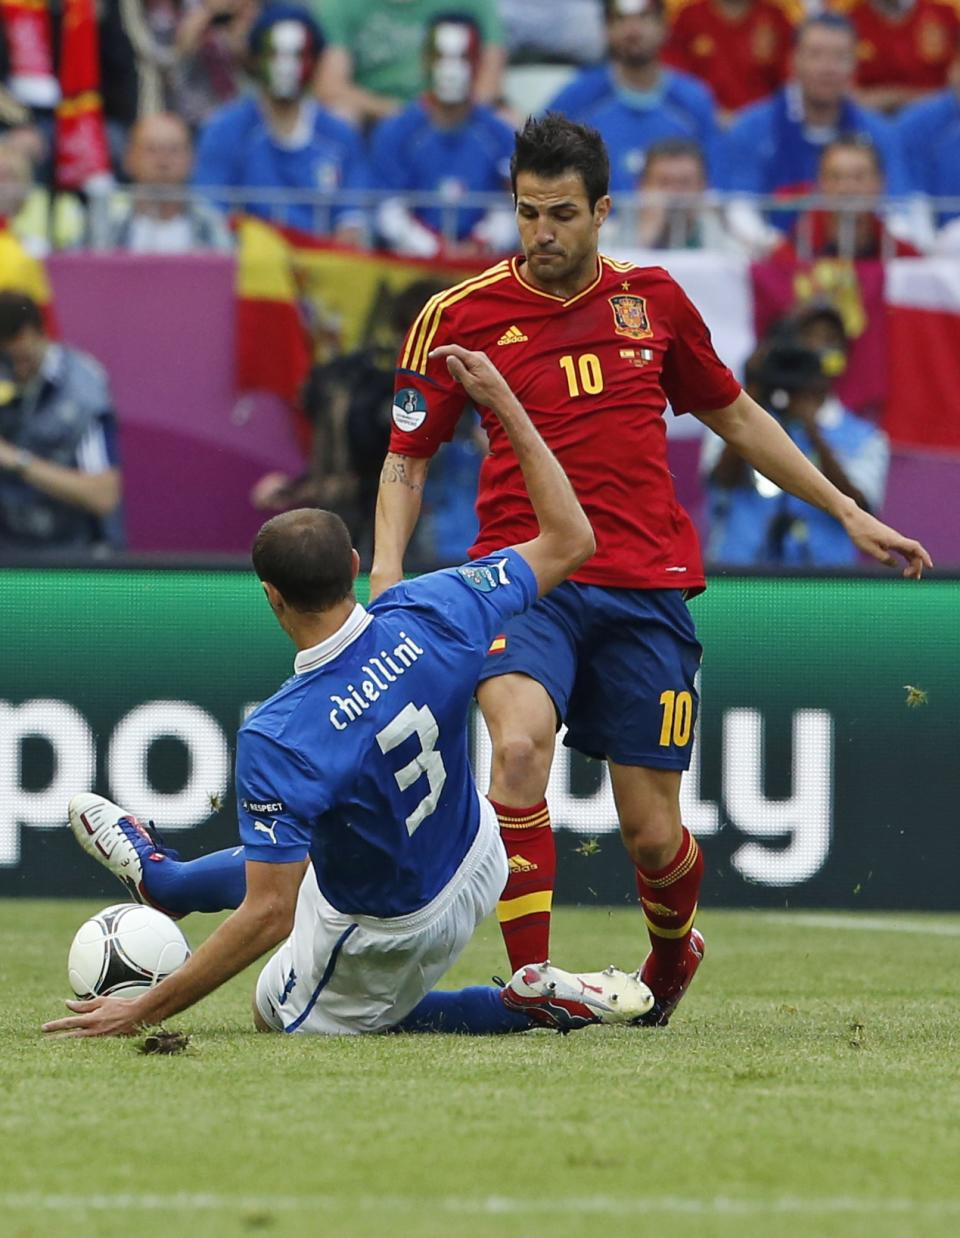 Spain's Cesc Fabregas, right, and Italy's Giorgio Chiellini vie for the ball  during the Euro 2012 soccer championship Group C match between  Spain and Italy in Gdansk, Poland, Sunday, June 10, 2012. (AP Photo/Gregorio Borgia)